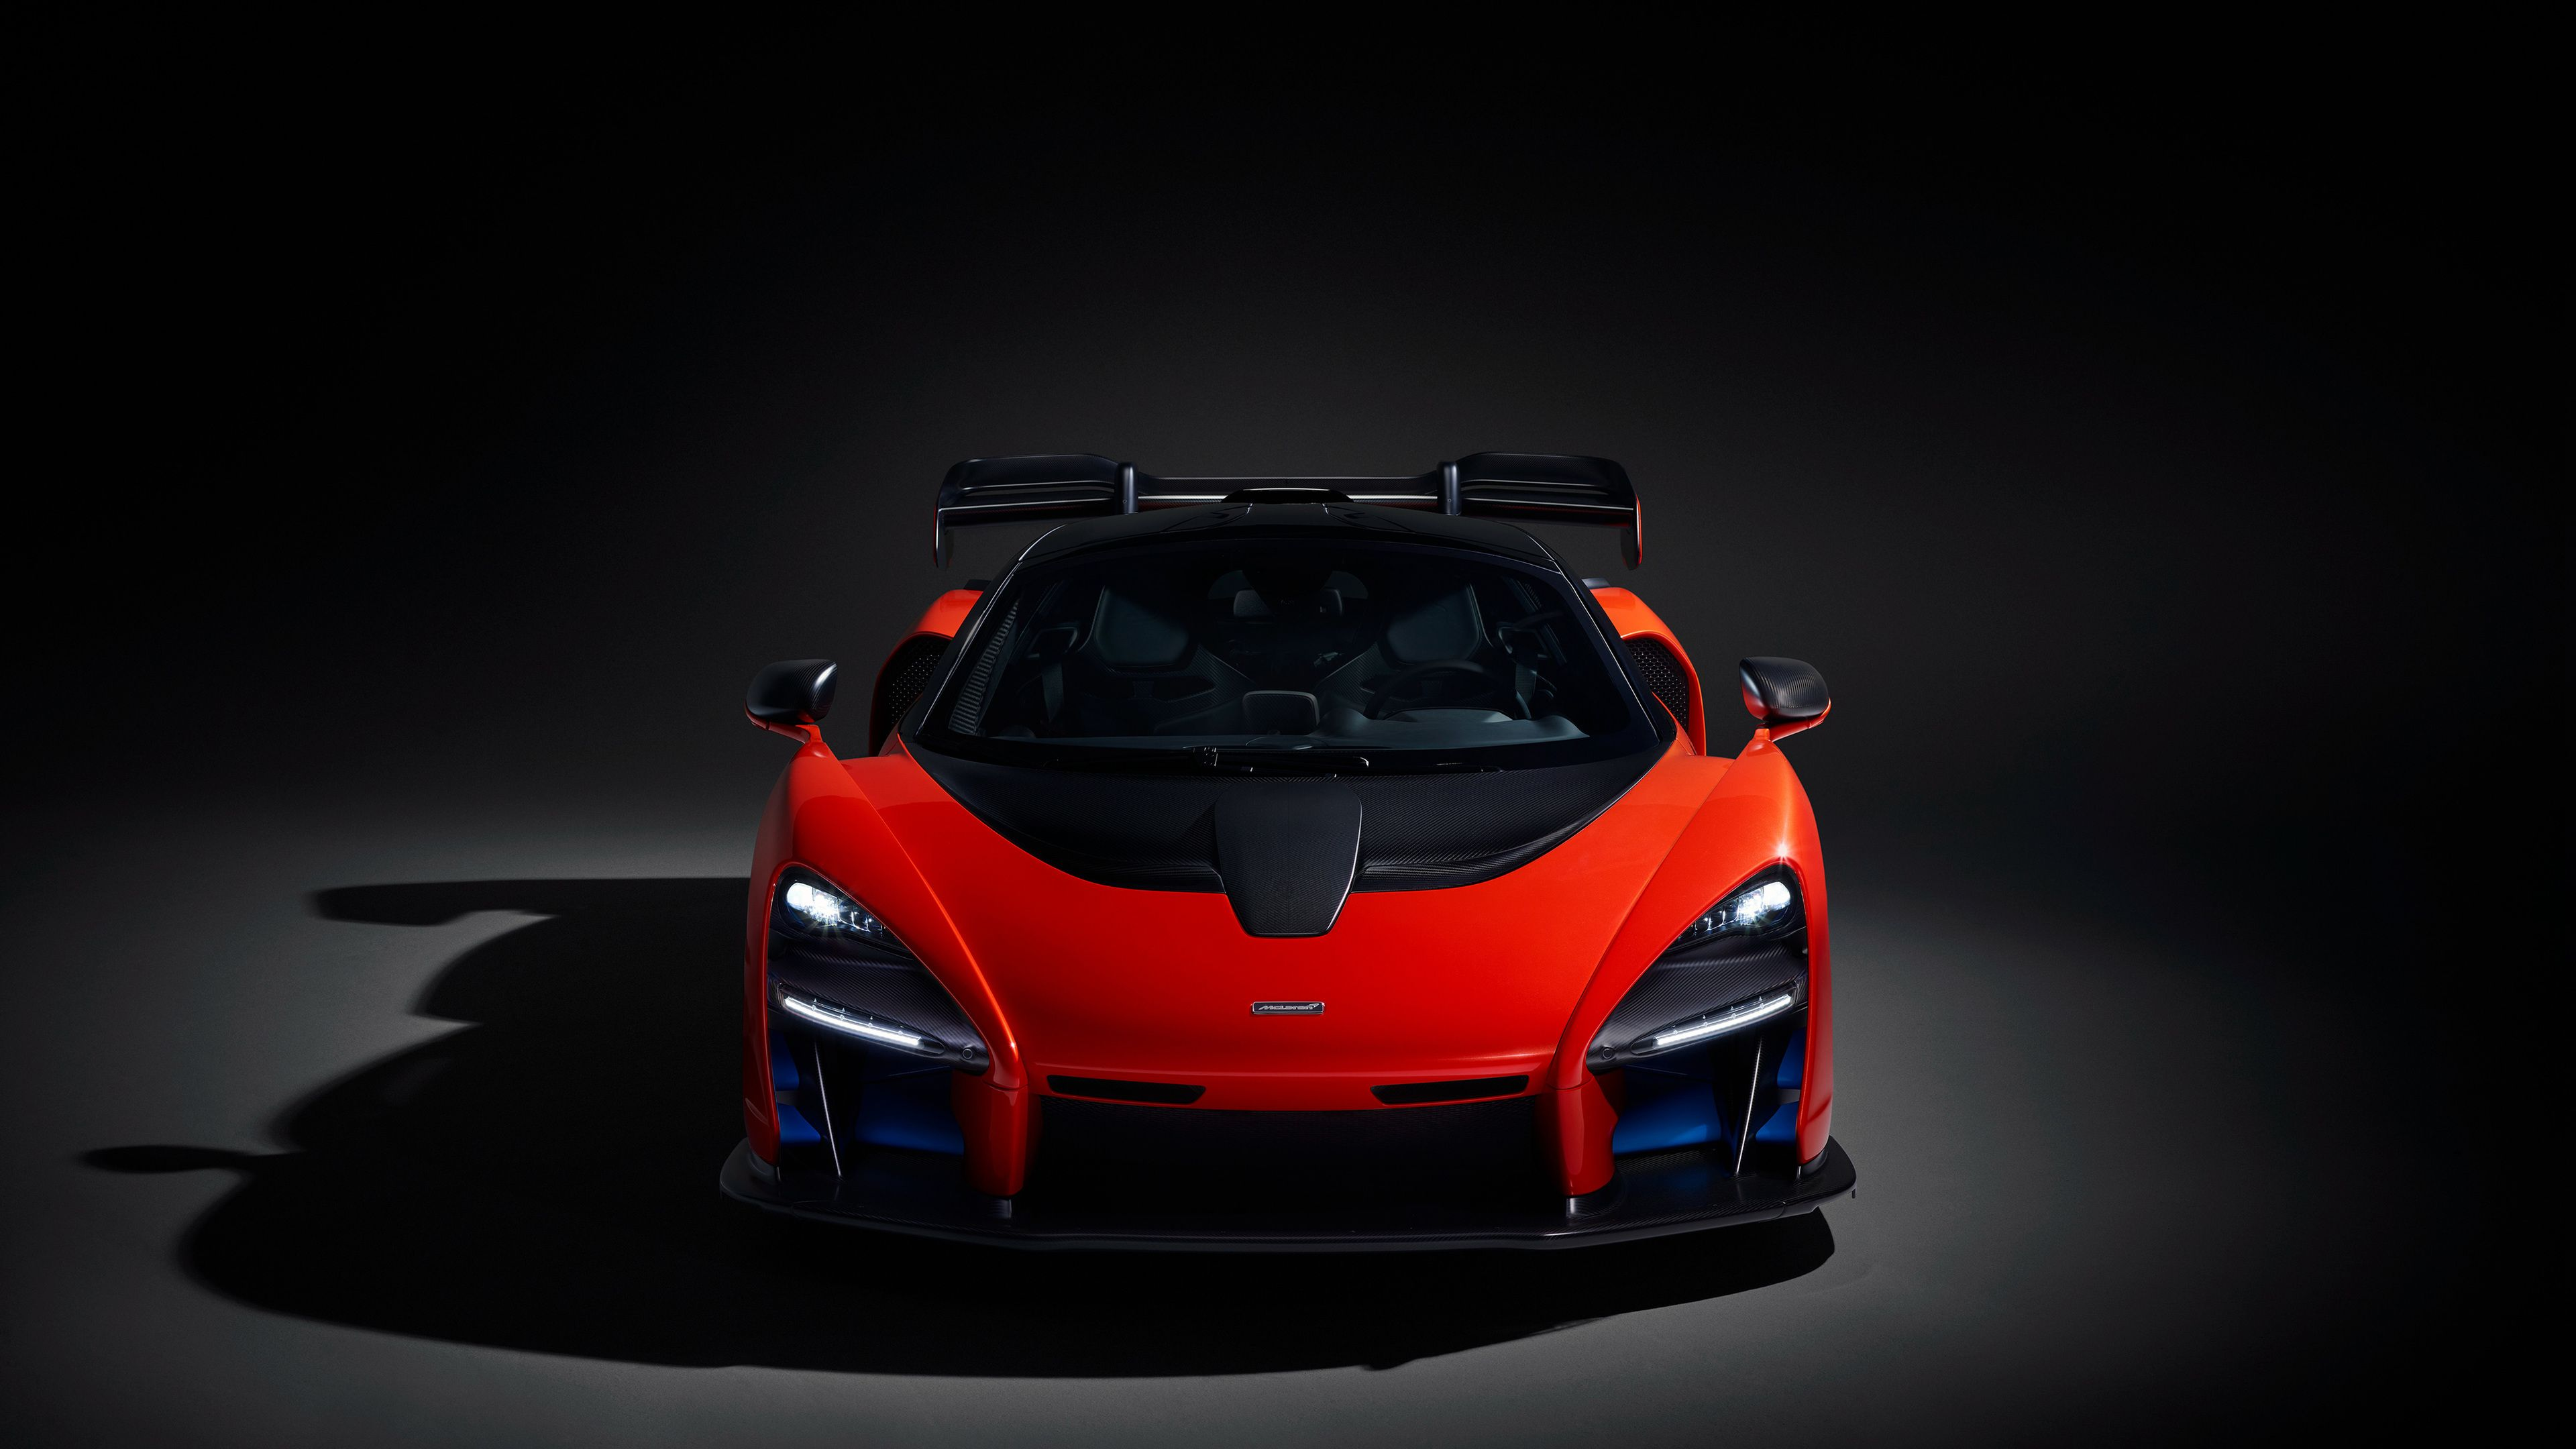 2018 Mclaren Senna Front View Mclaren Wallpapers Mclaren Senna Wallpapers Hd Wallpapers 4k Wallpapers 2018 Cars Wal Mclaren Road Car Super Cars New Mclaren